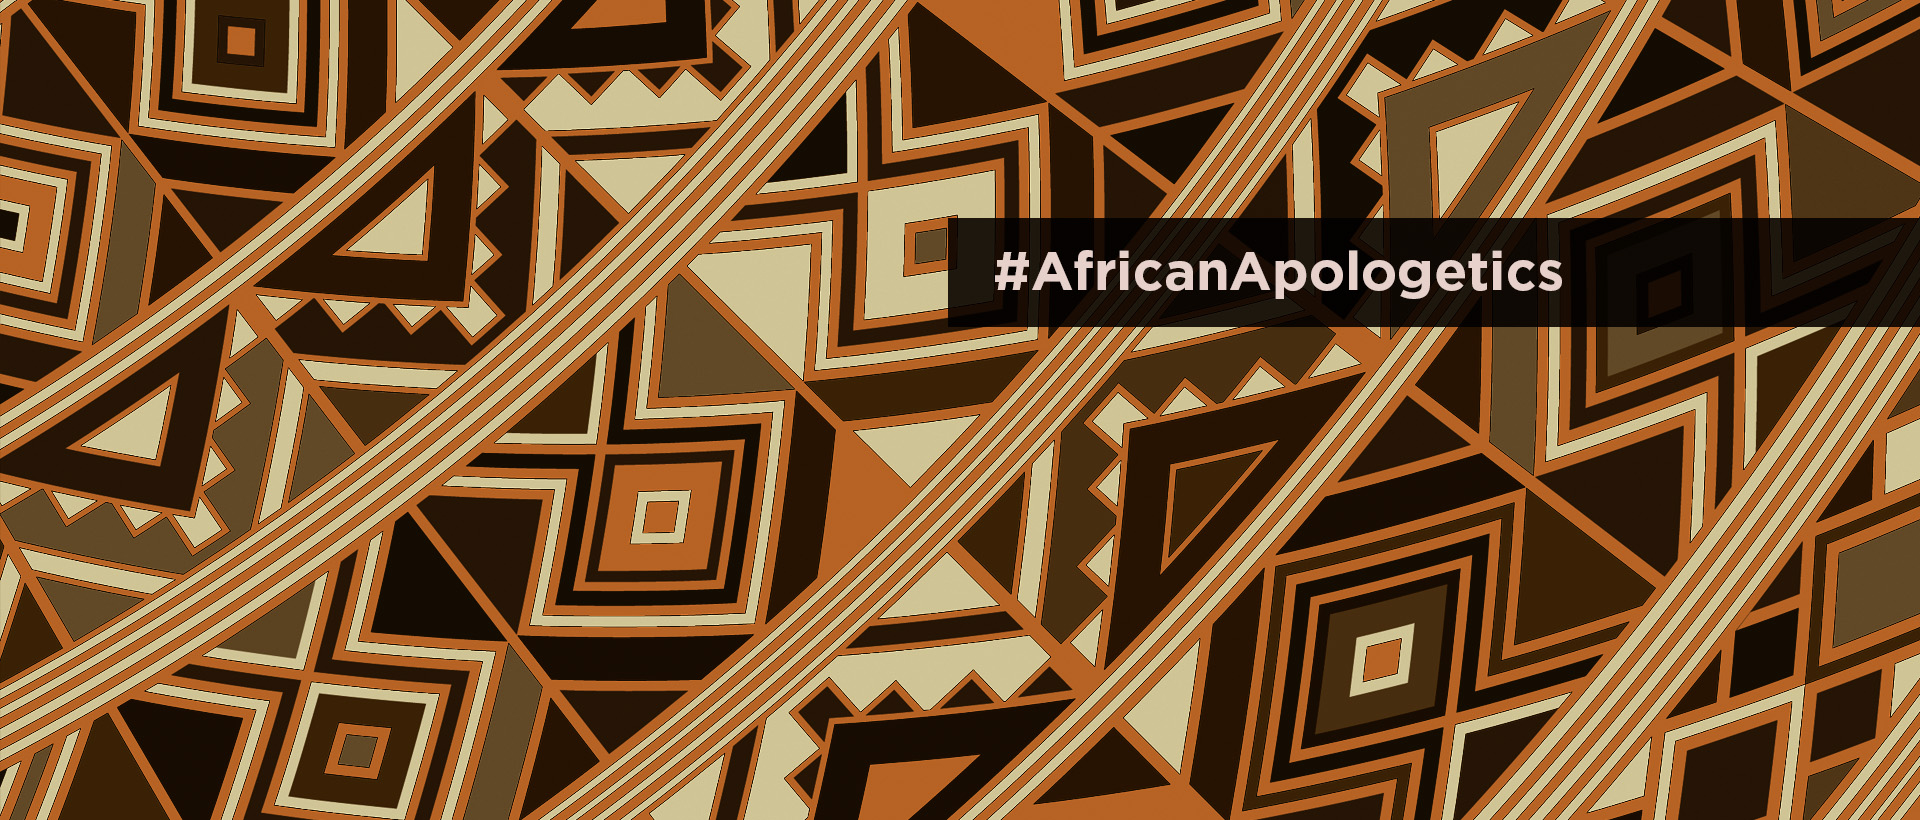 African Apologetics - African print with #AfricanApologetics on it